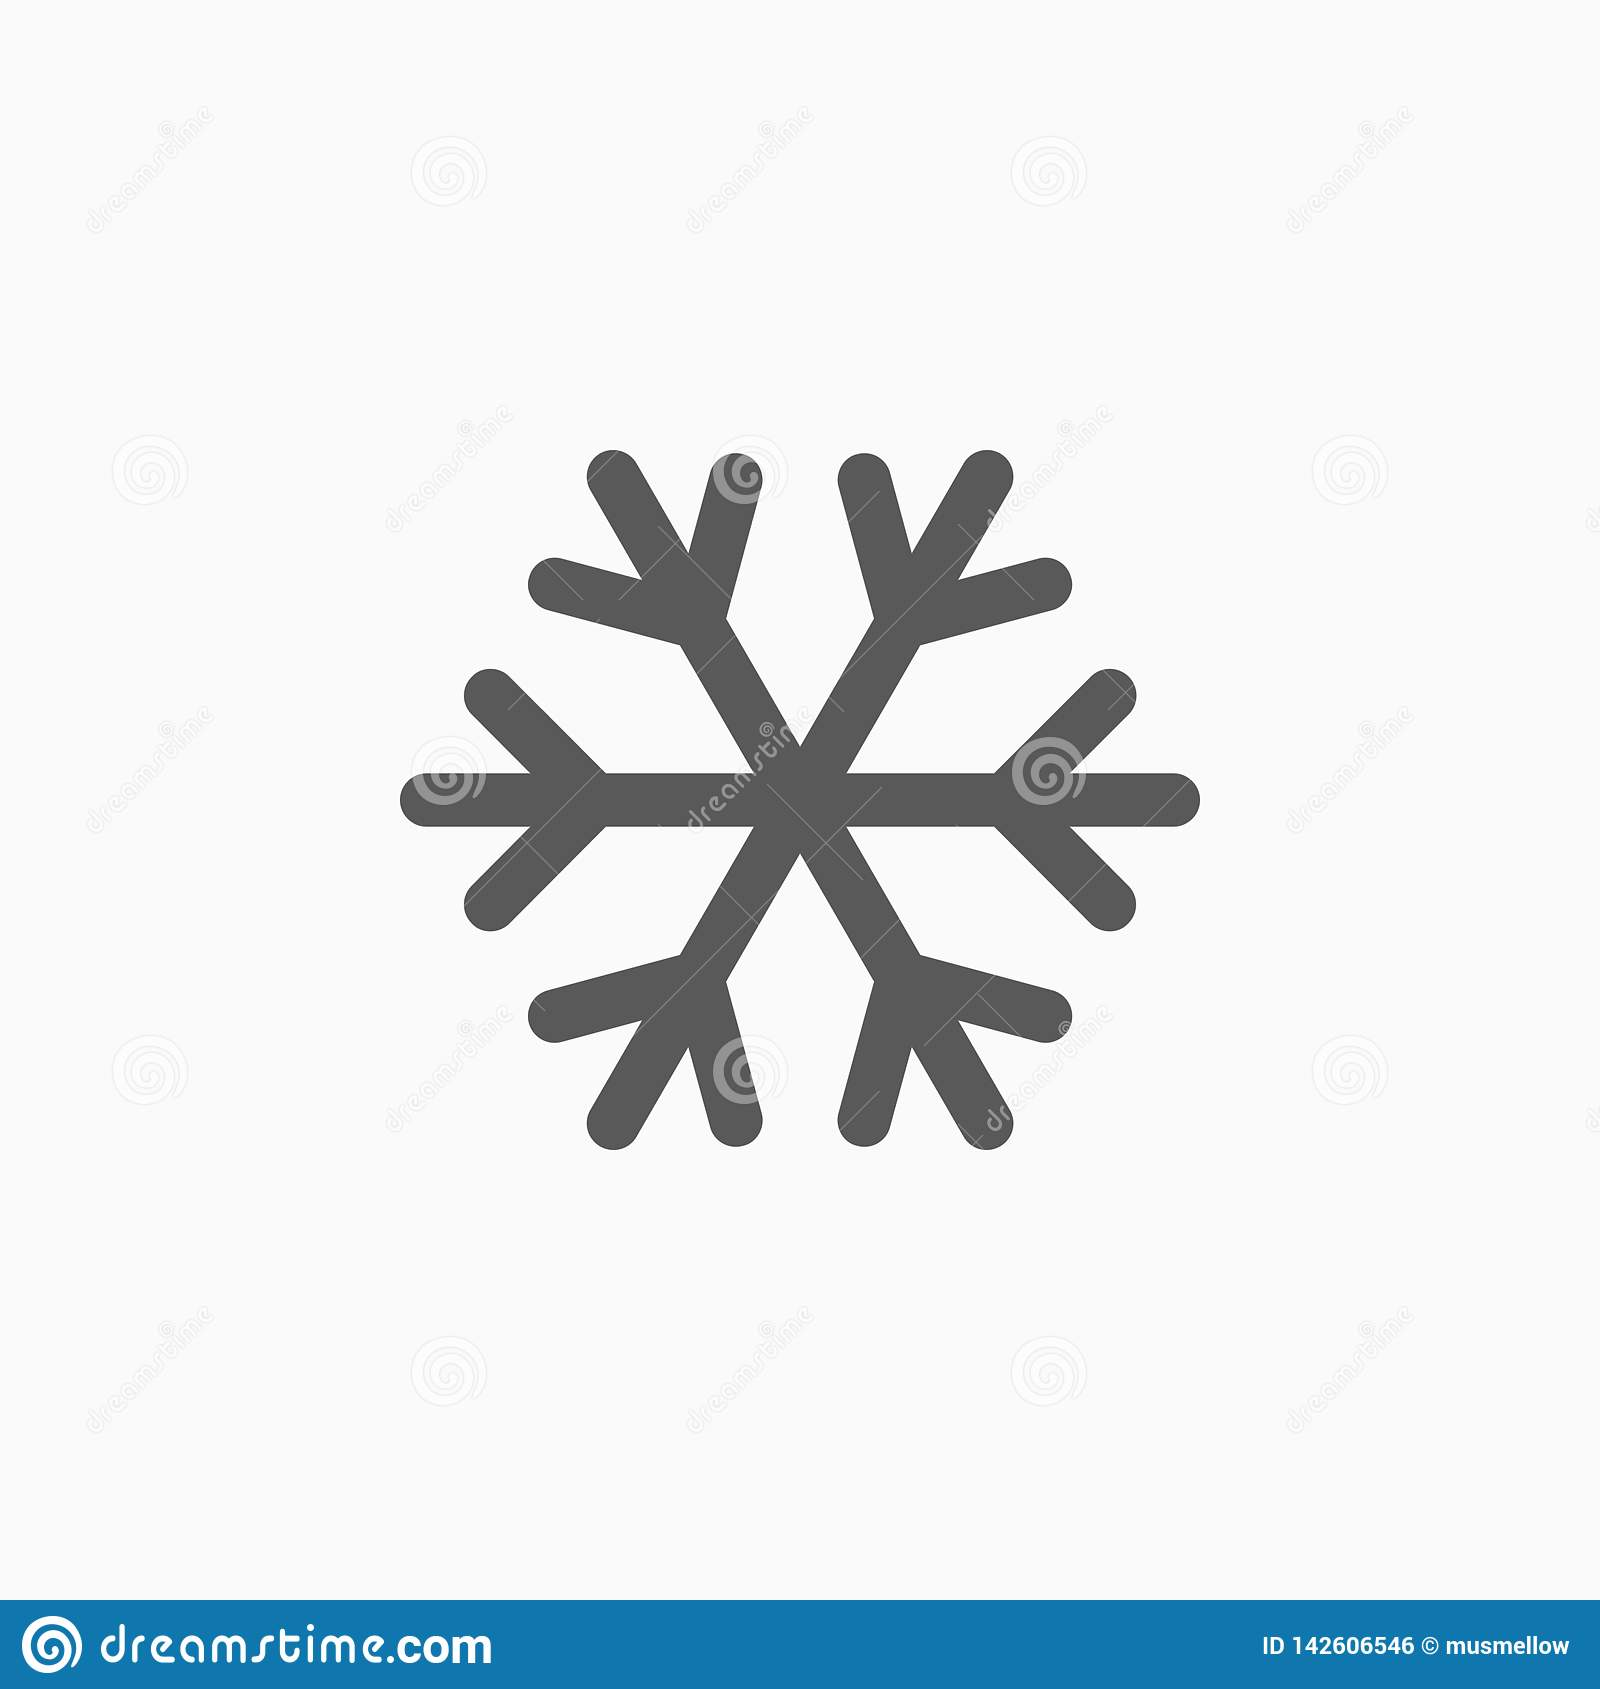 Snowflake icon, snow, weather, cold, cool